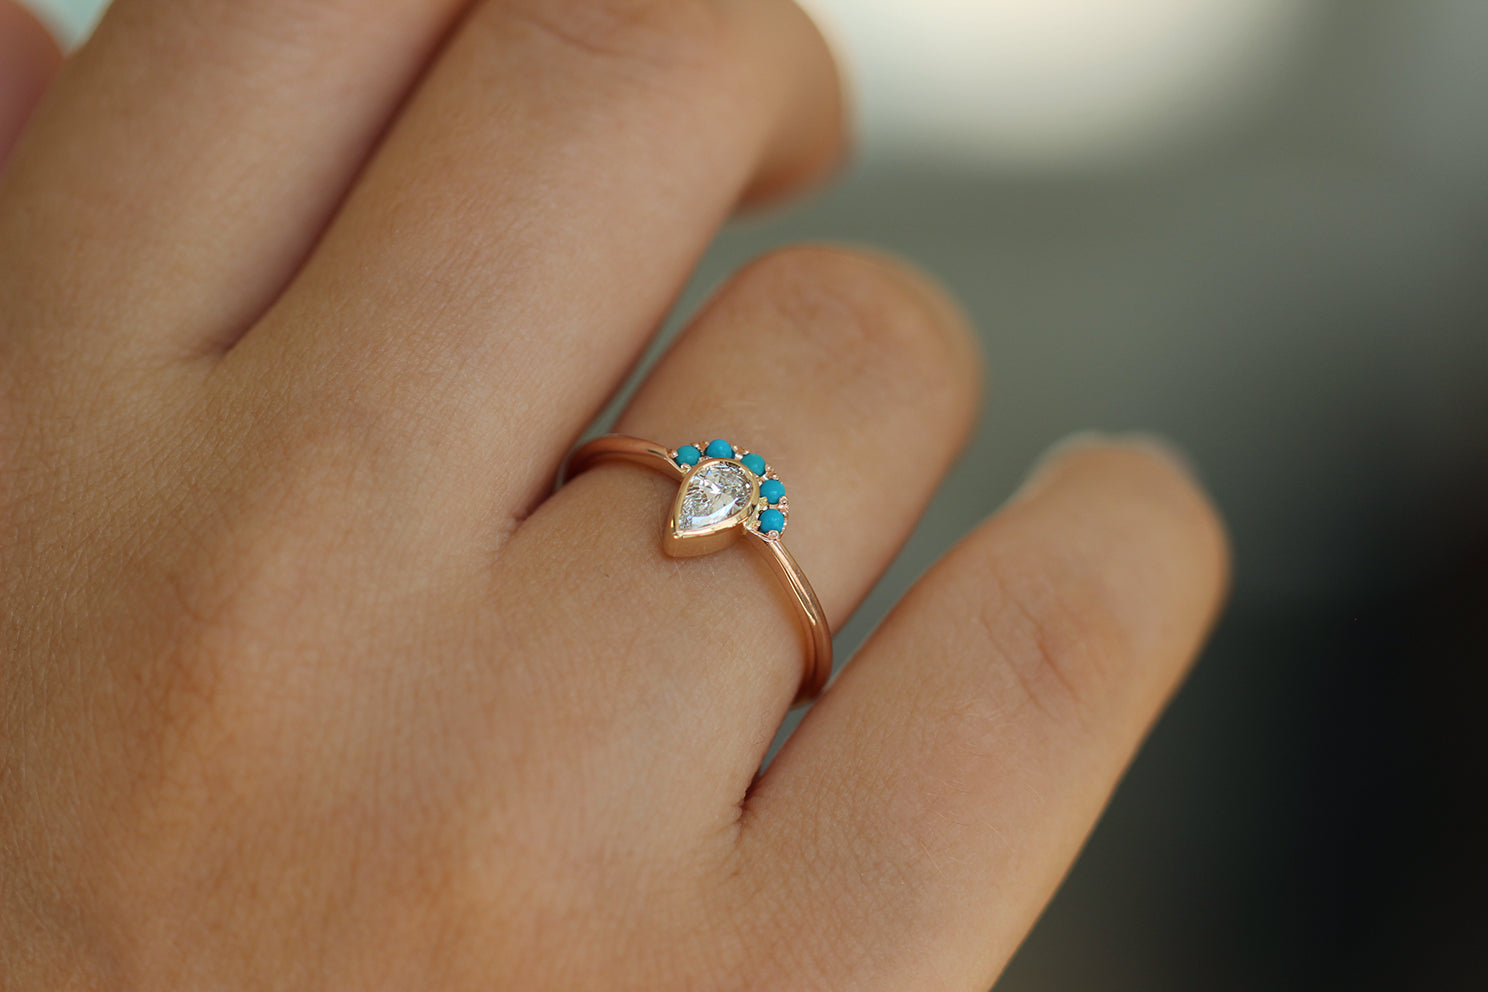 Pear Cut Diamond Ring - Turquoise Crown Diamond Ring on Hand Up Close